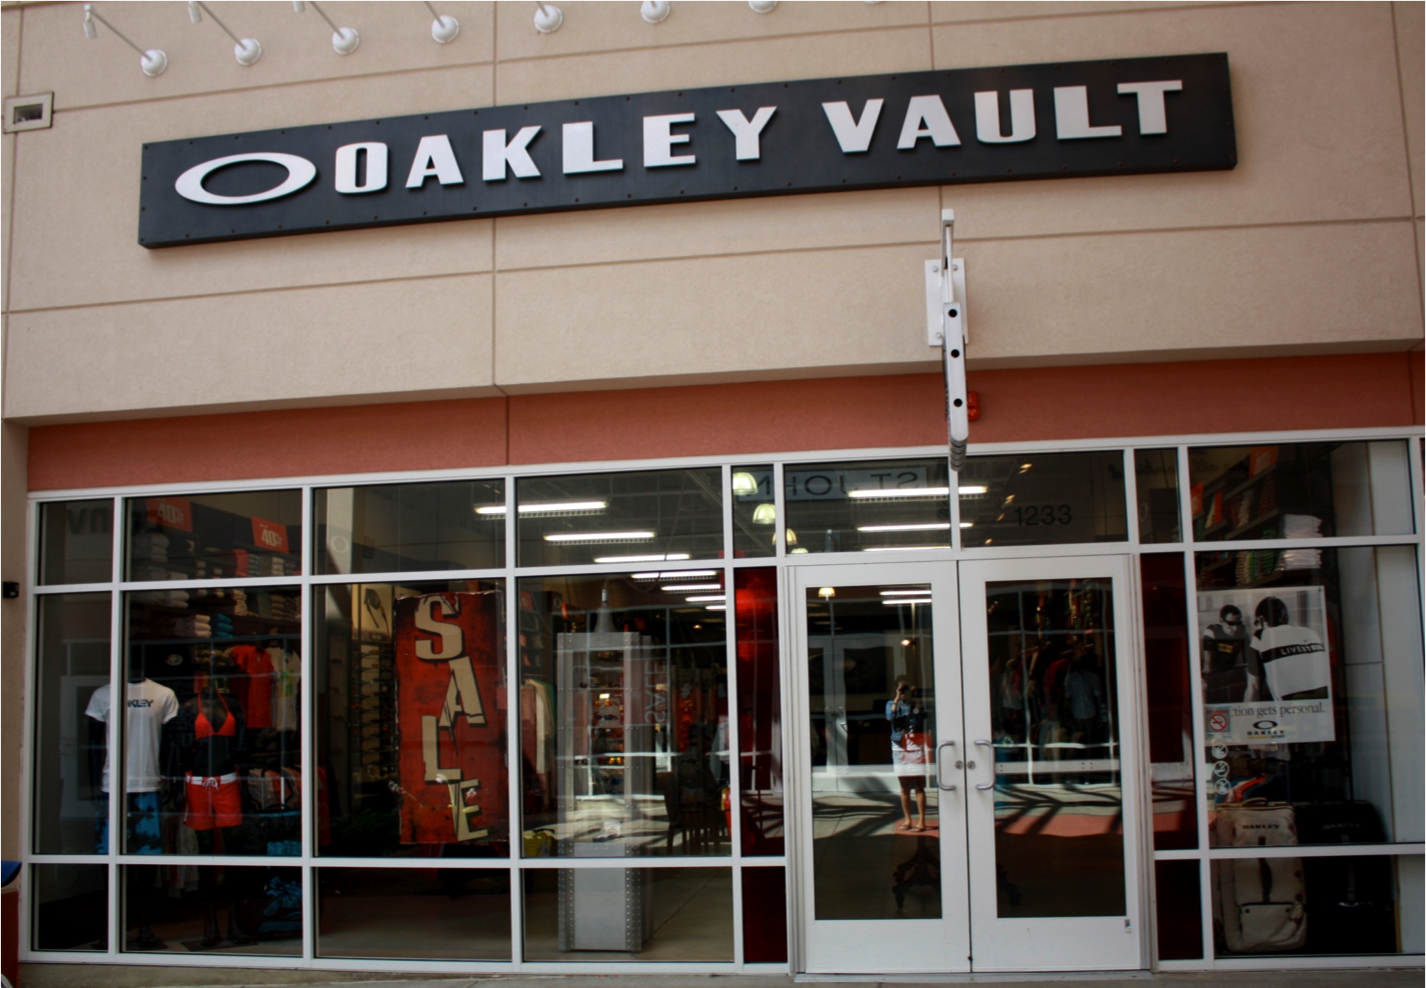 oakley outlet chicago  the official oakley outlet store: the oakley vault at chicago premium outlets. shop oakley sunglasses, goggles, apparel, and more up to 50% off at oakley